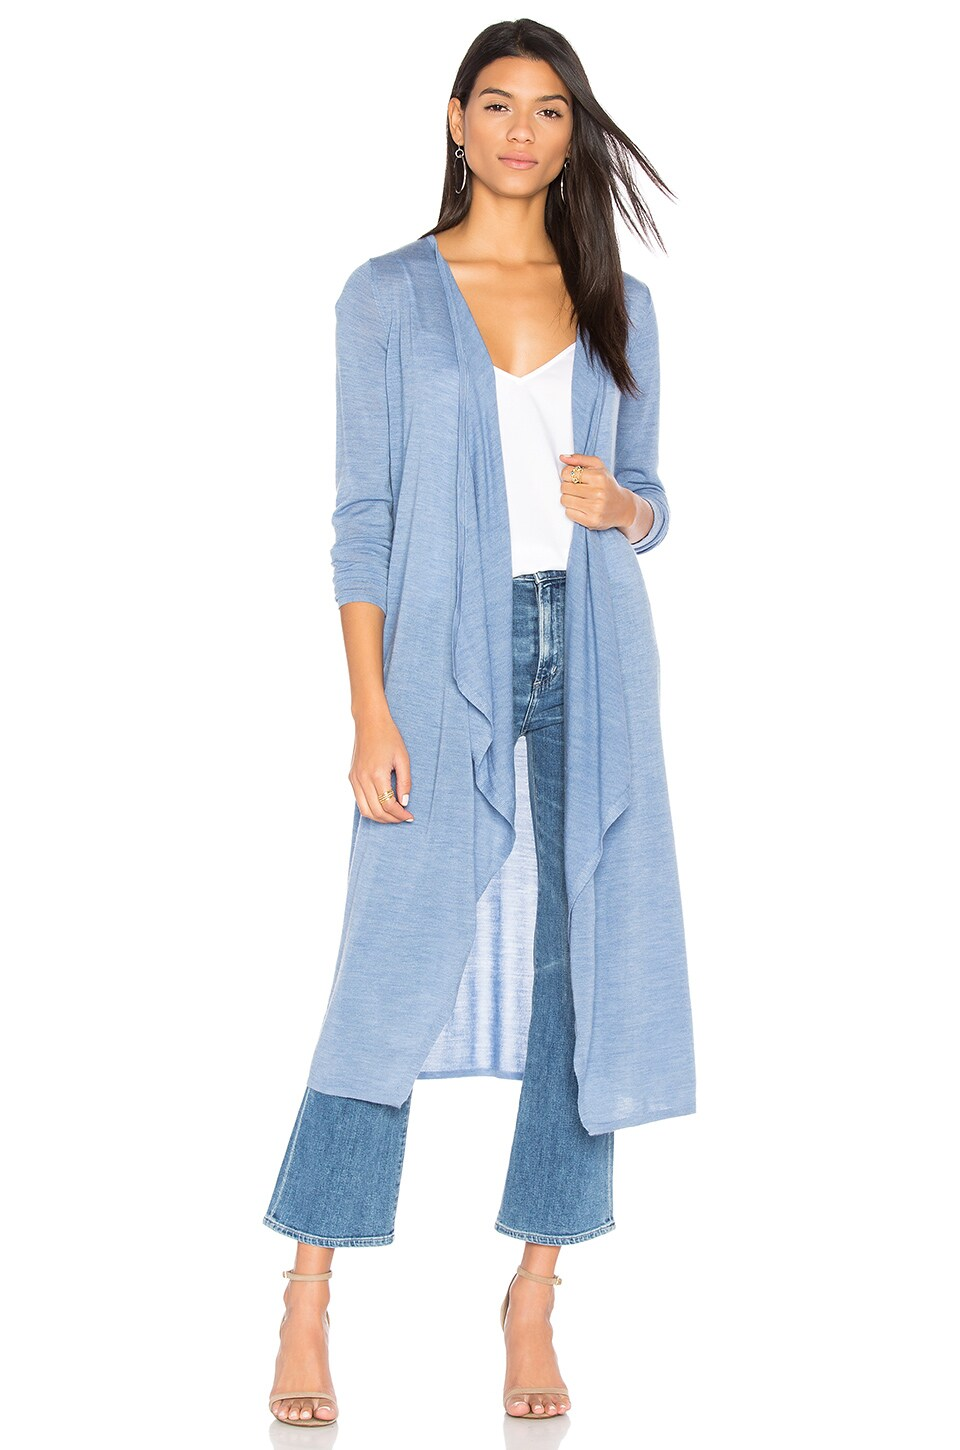 The Draped Duster Cardigan by Brown Allan